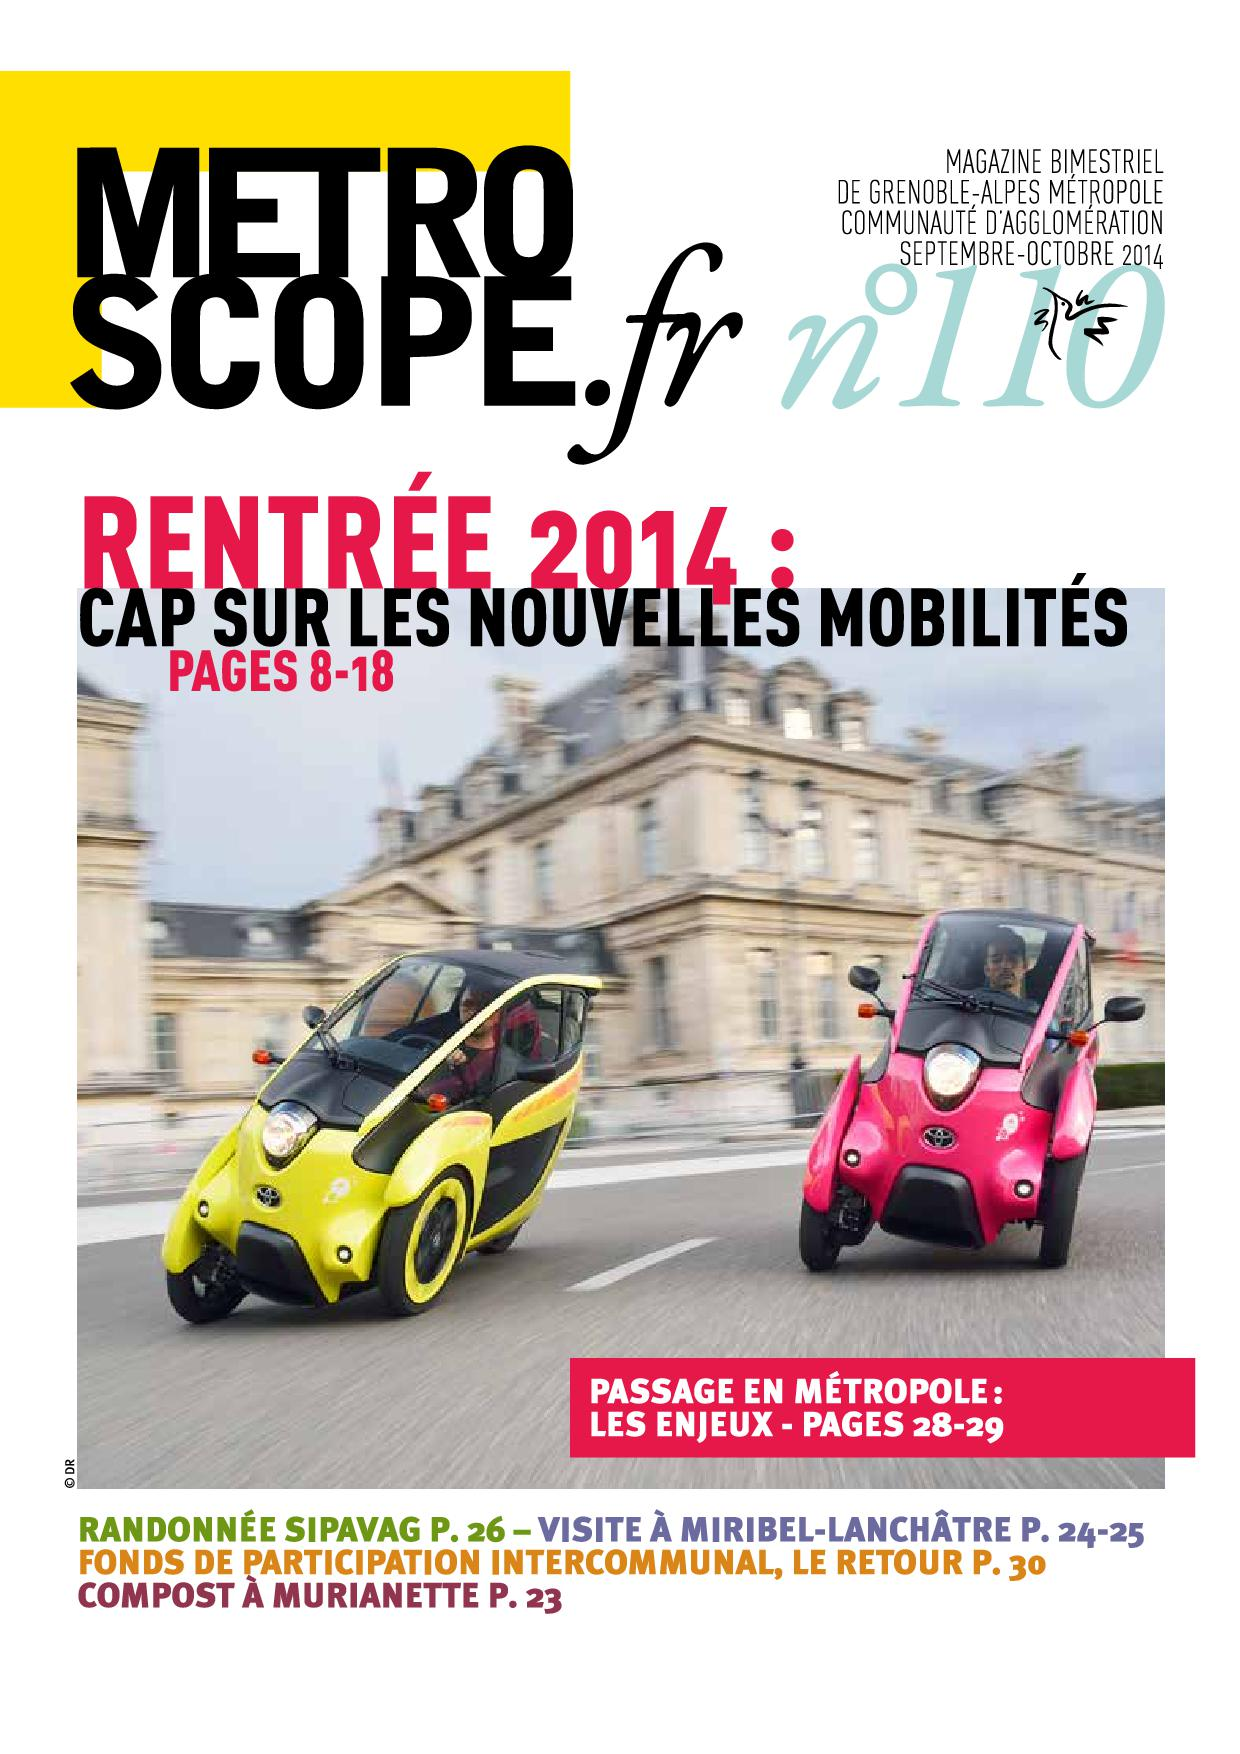 Metroscope 110 couverture septembre 2014